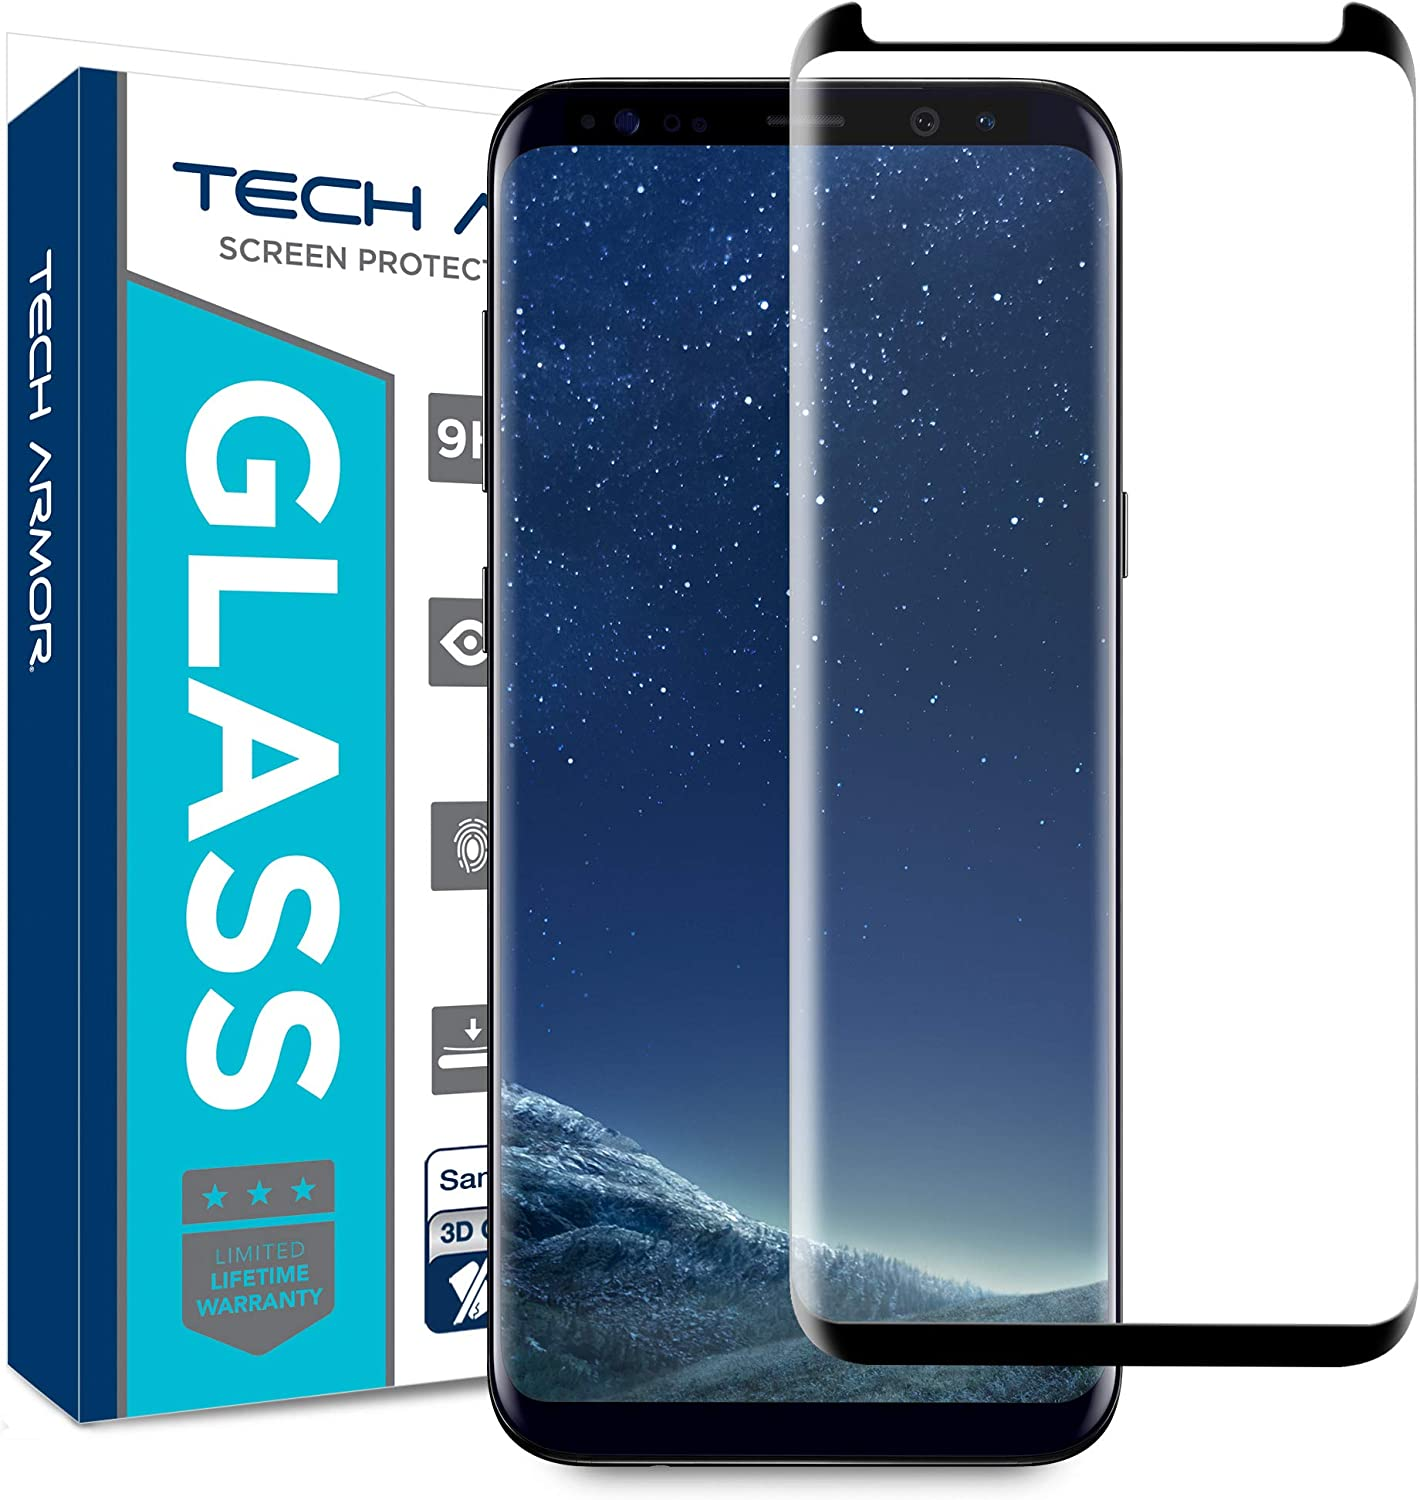 Case Friendly 3 Pack Conber Premium Tempered Glass Screen Protector for Samsung Galaxy S4 Scratch-Resistant Screen Protector for Samsung Galaxy S4, Anti-Shatter